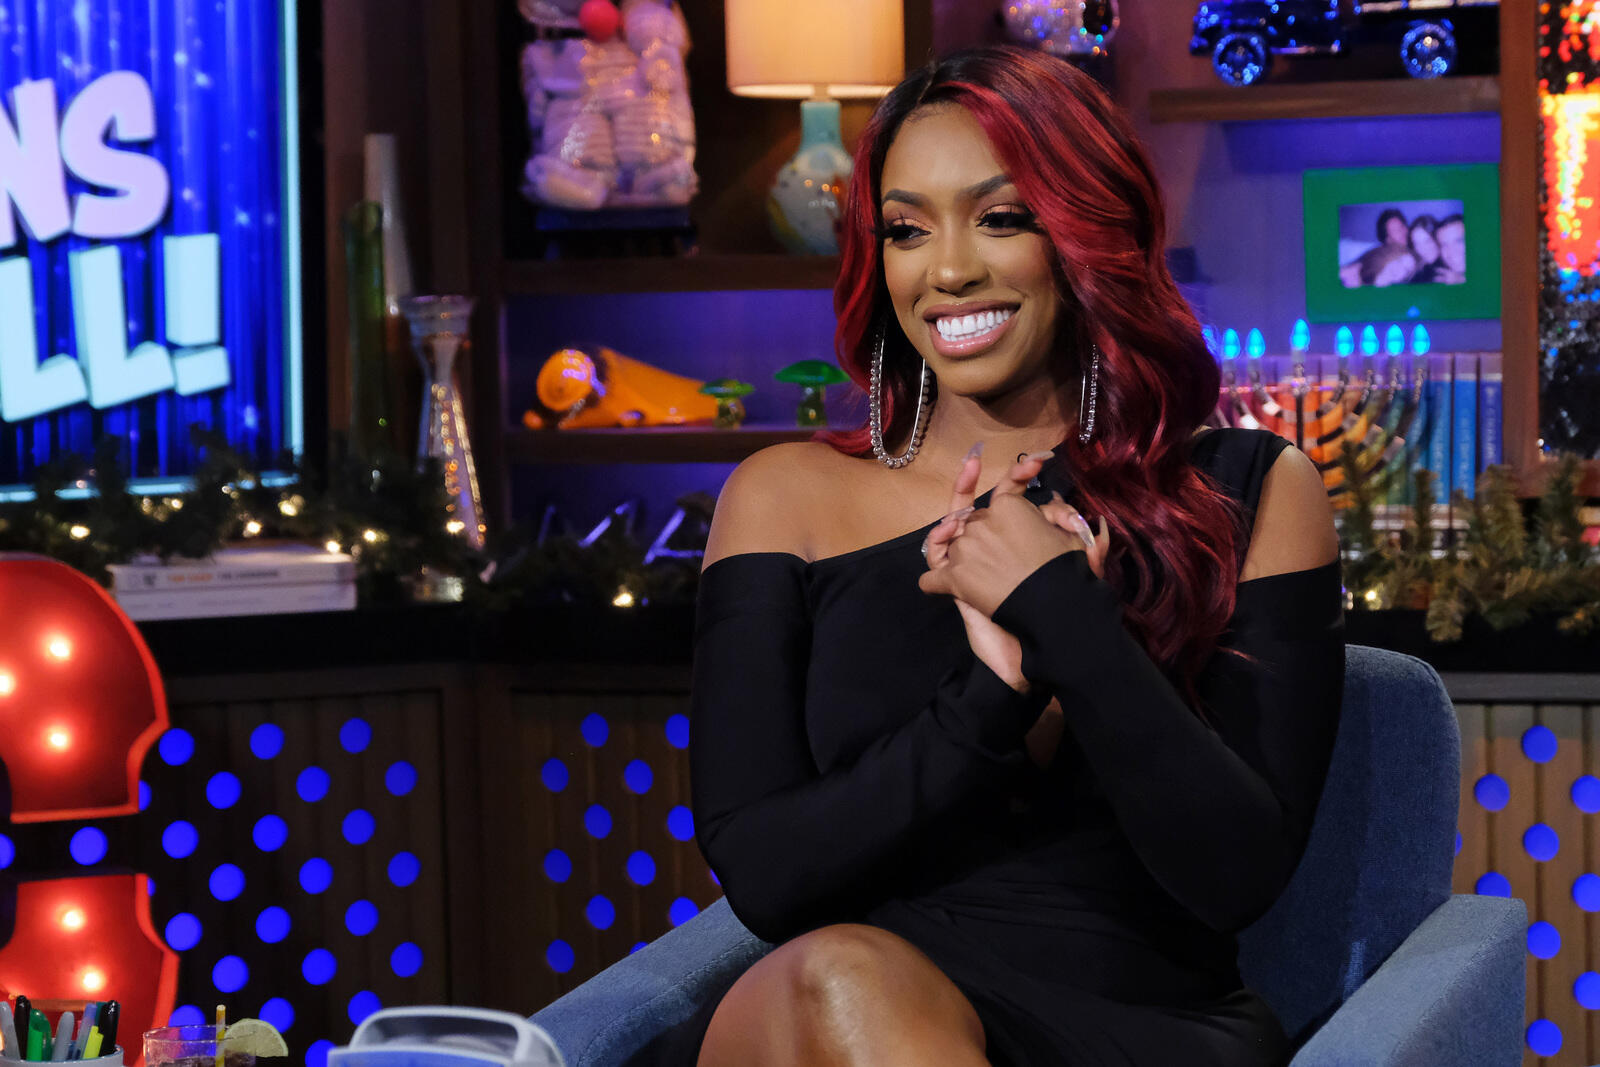 260: 08/27/21 - We're Giving Porsha Williams a Fabulous Farewell on her Last Day at Dish Nation!